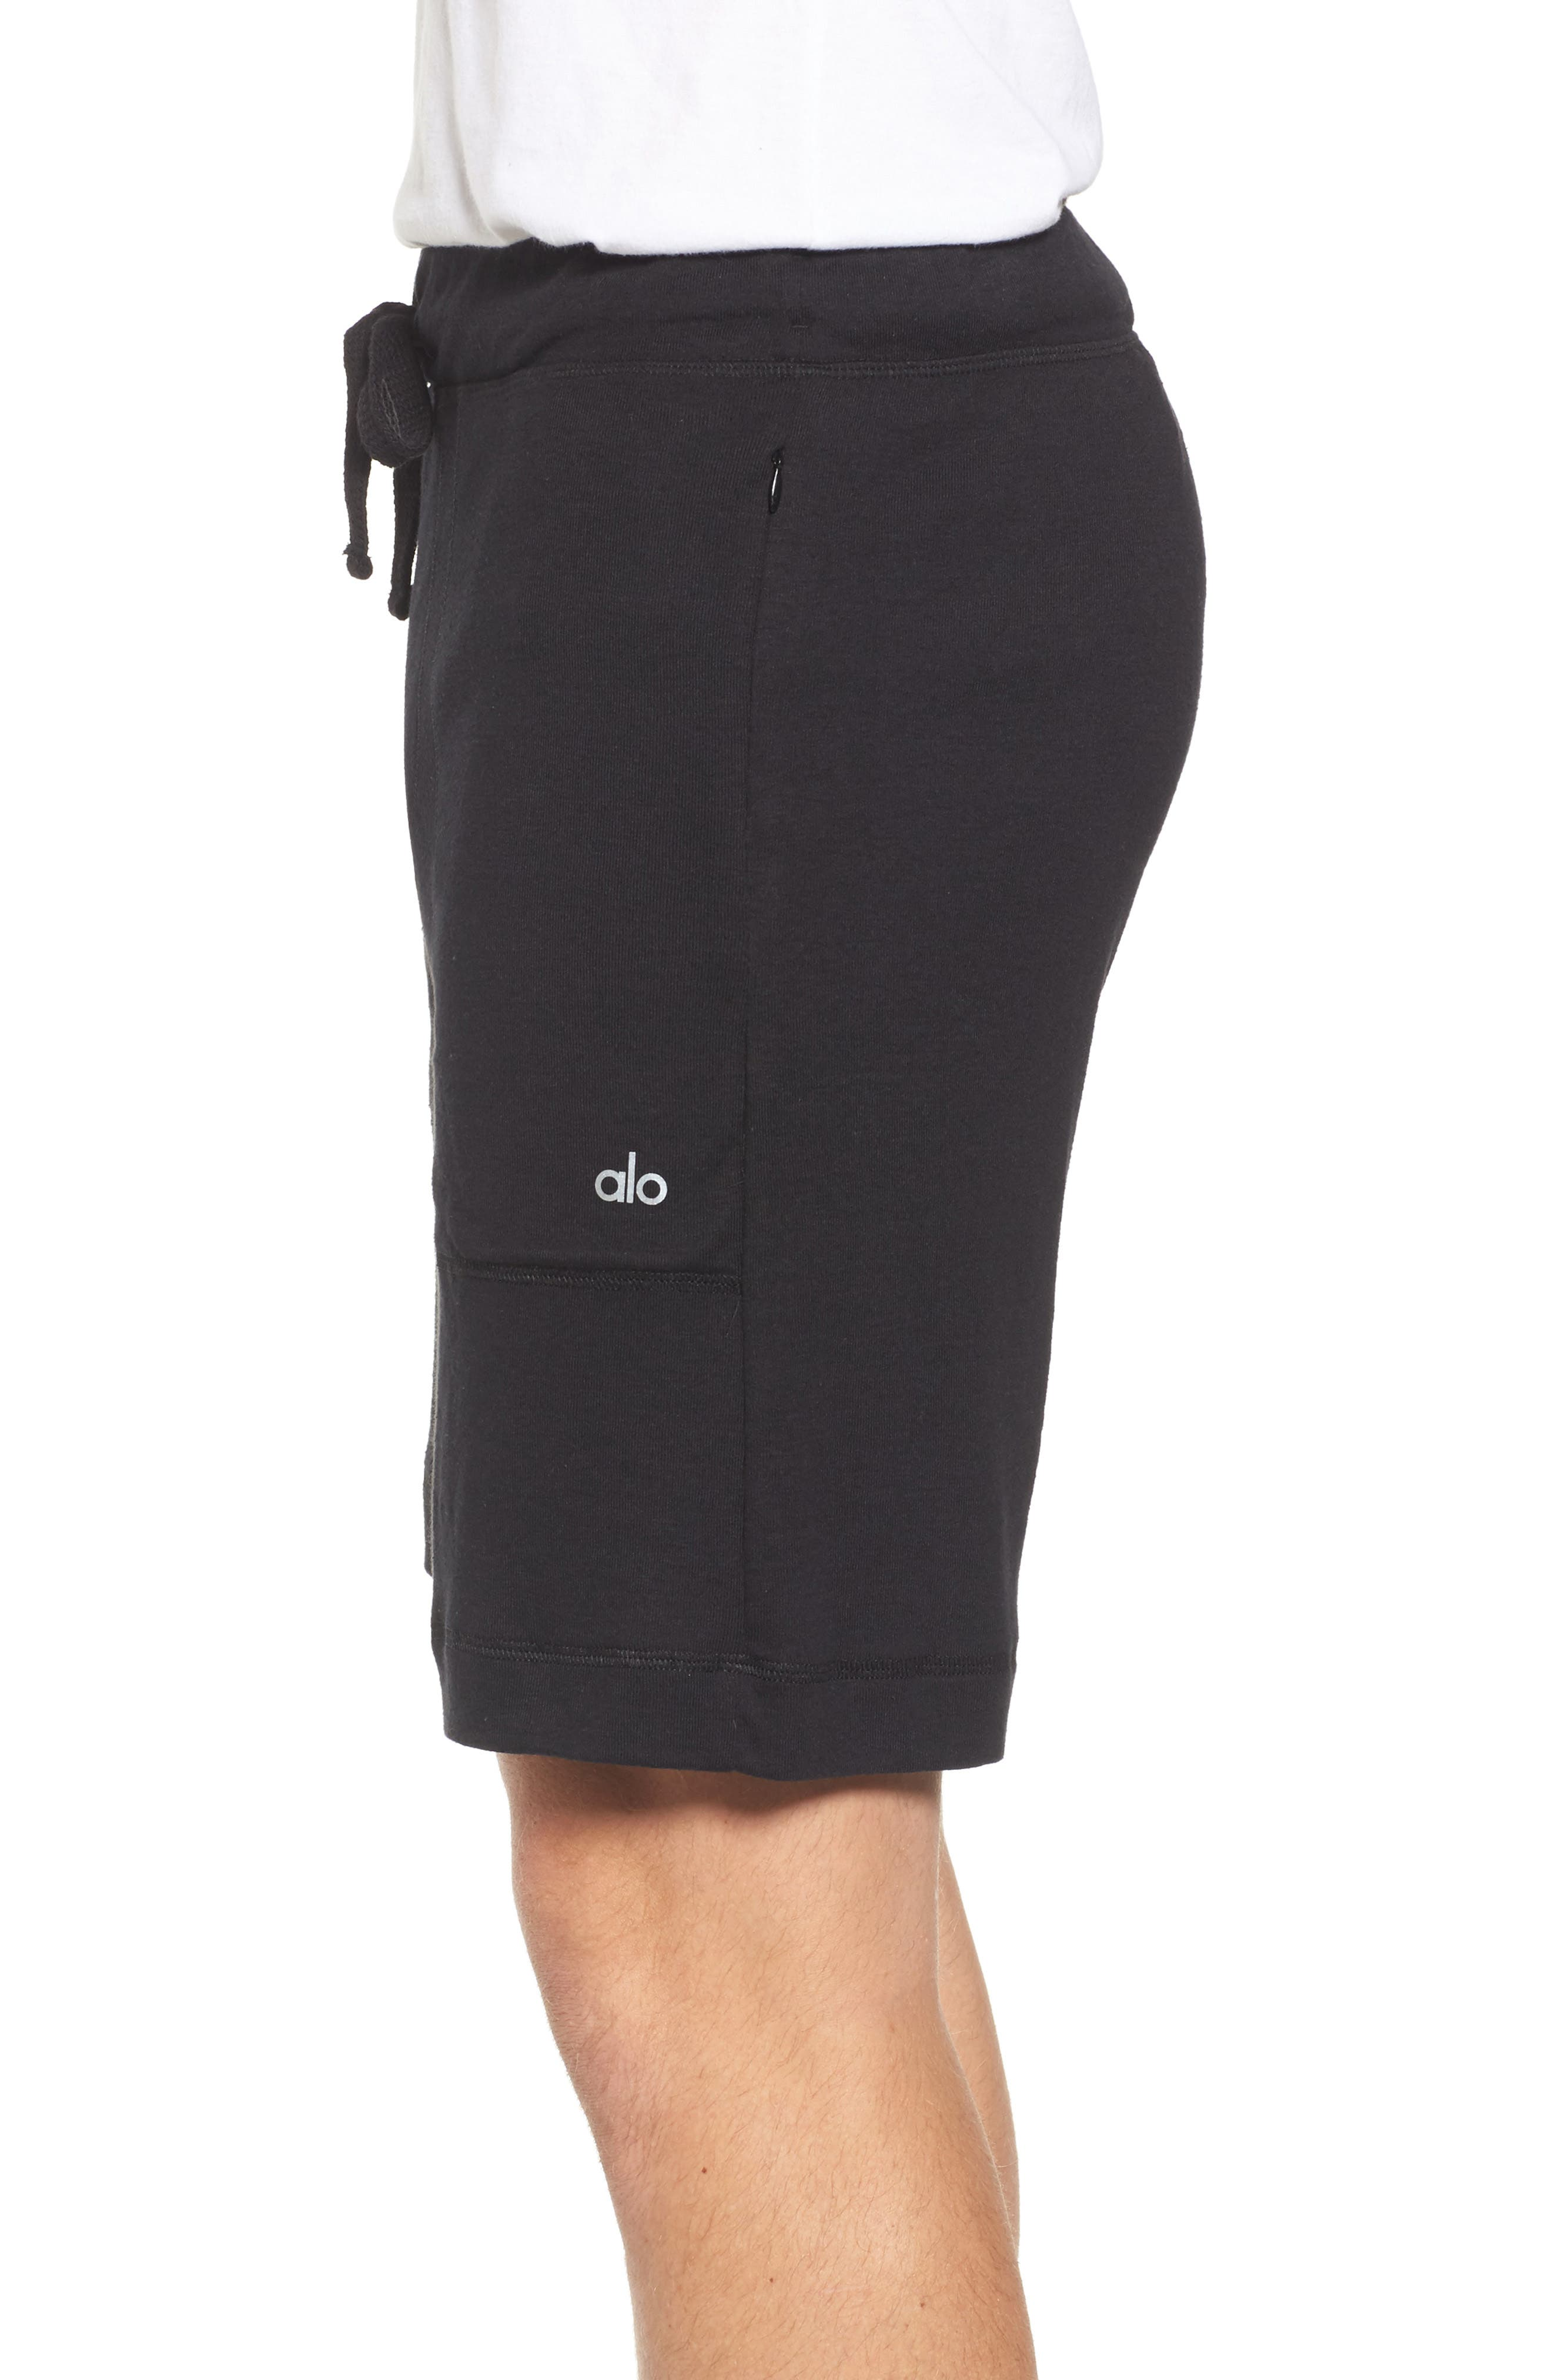 Alternate Image 3  - Alo Revival Relaxed Knit Shorts